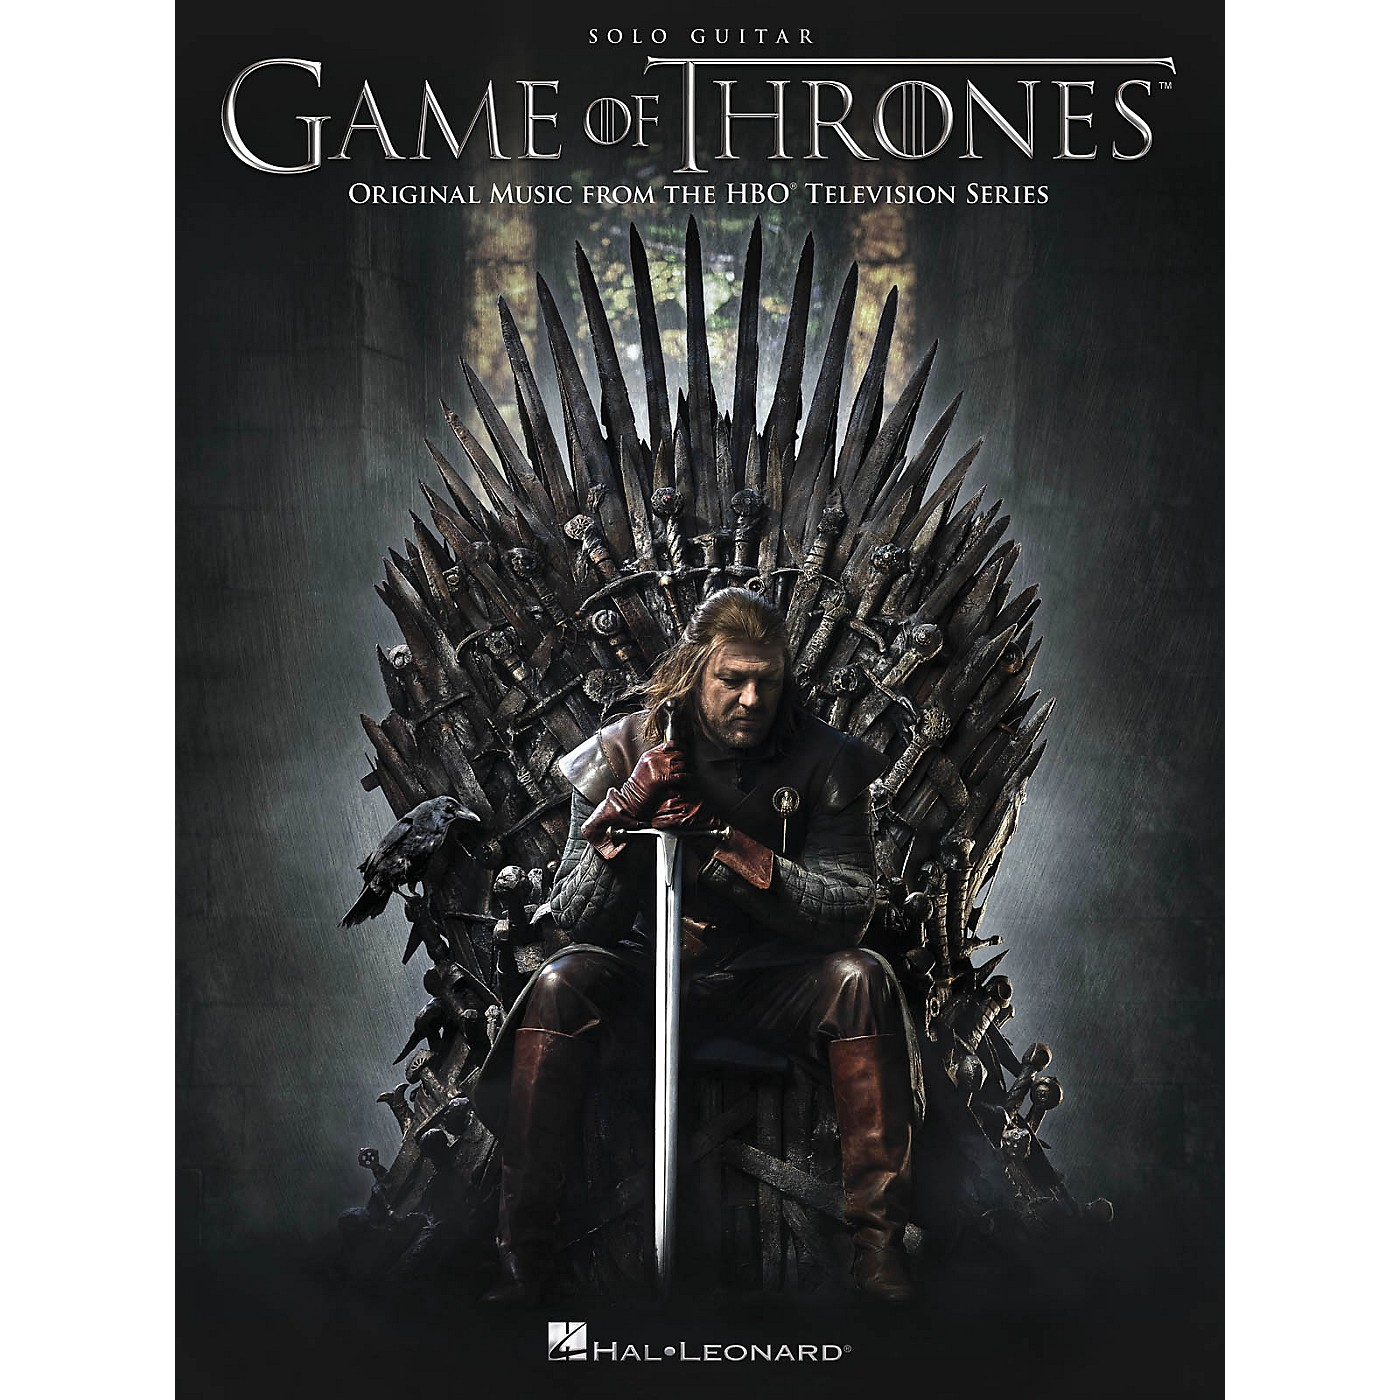 Hal Leonard Game of Thrones (Original Music from the HBO Television Series) Guitar Solo Songbook thumbnail